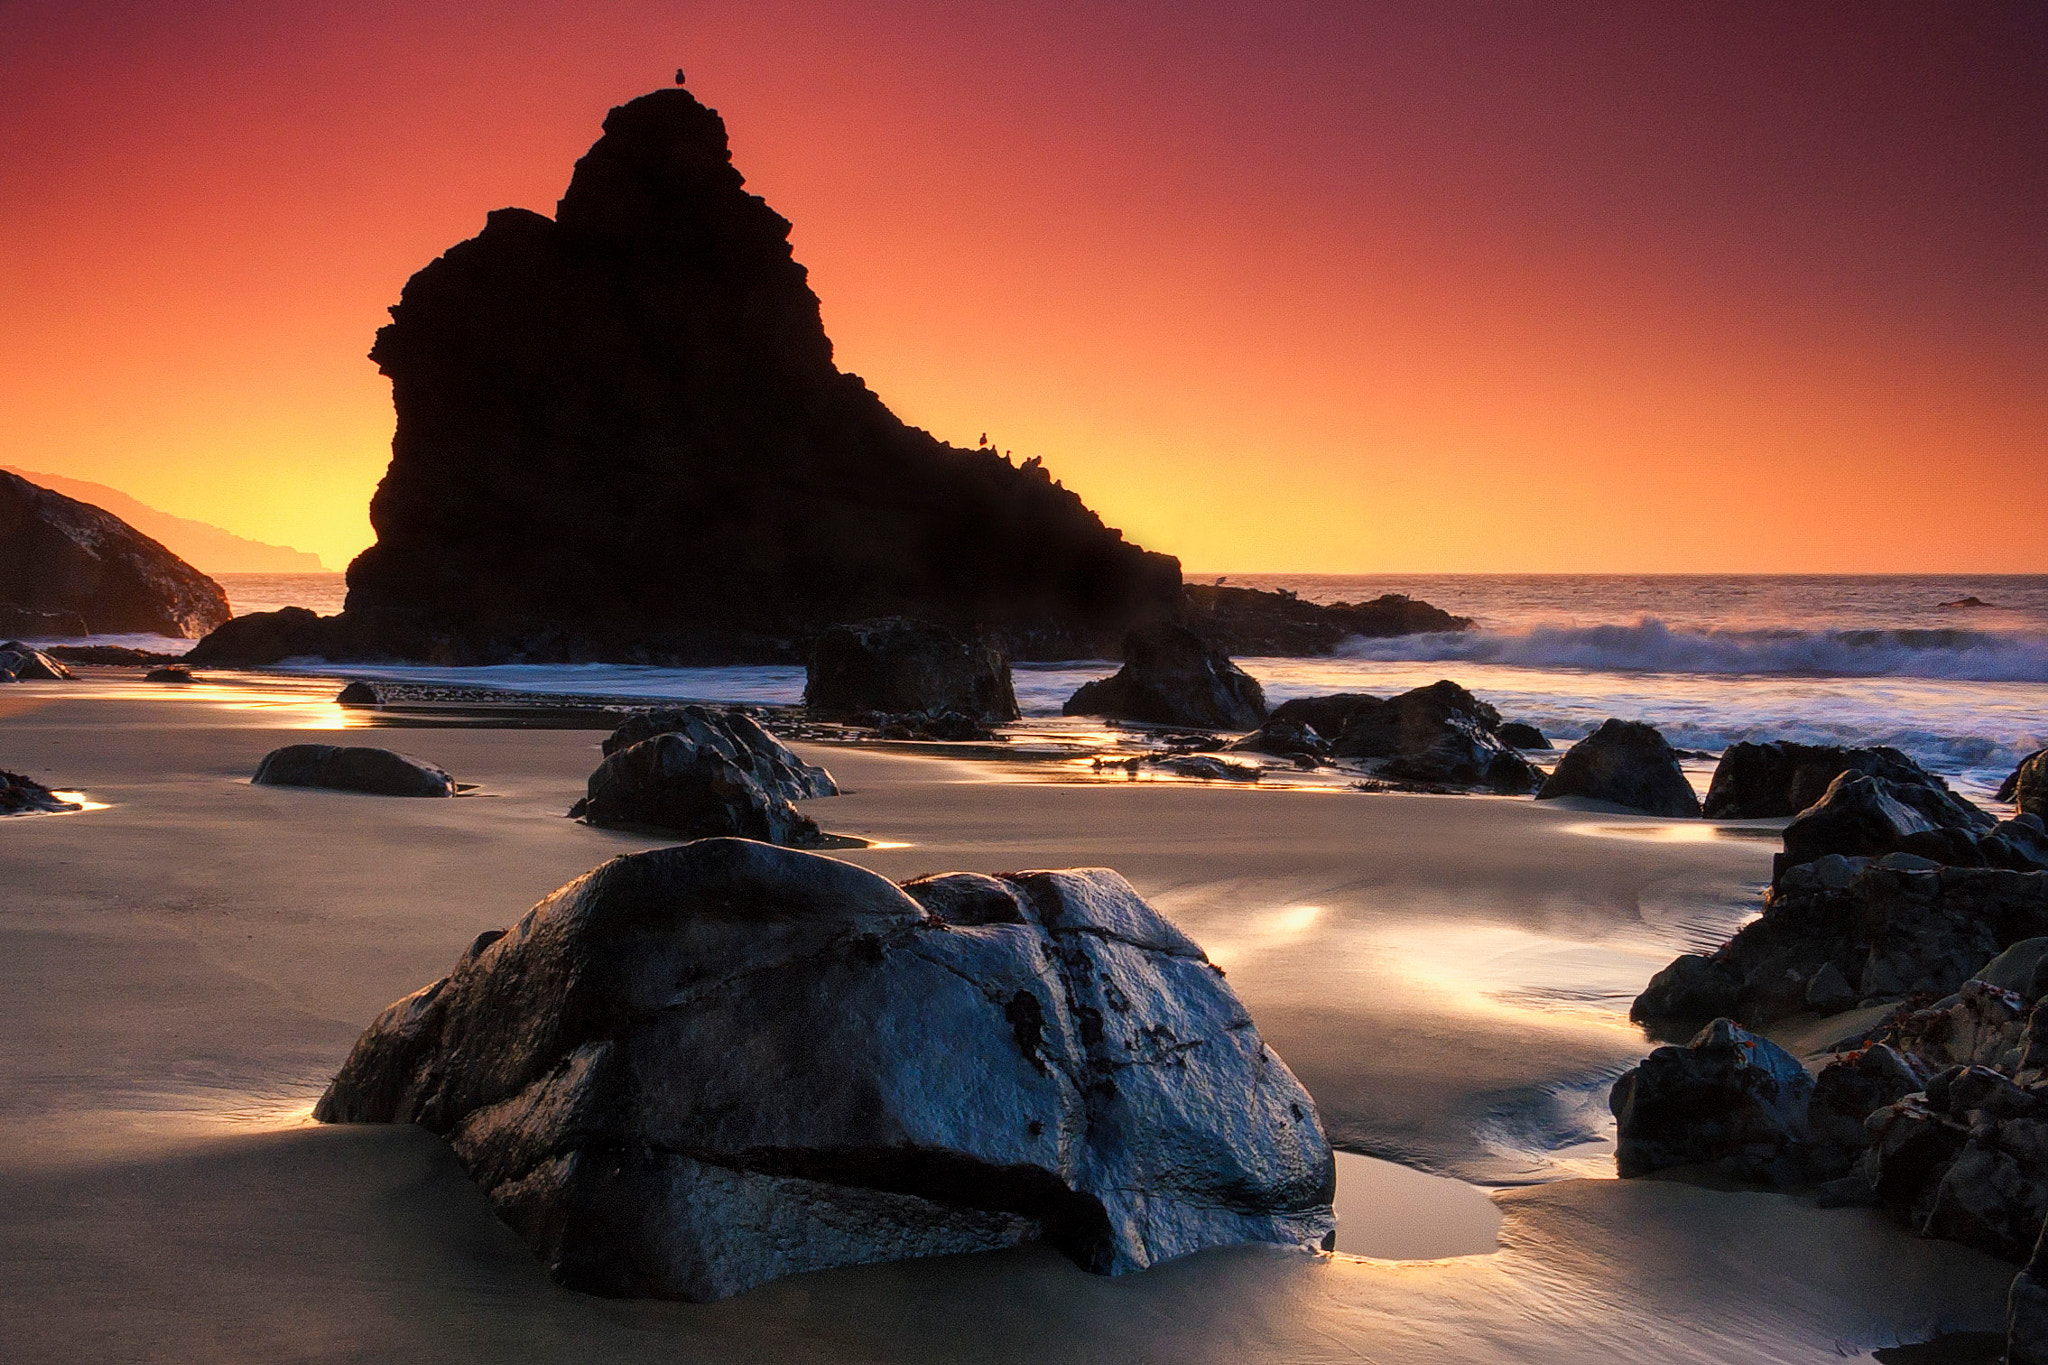 Photograph Pacific Sunset by Chaluntorn Preeyasombat on 500px